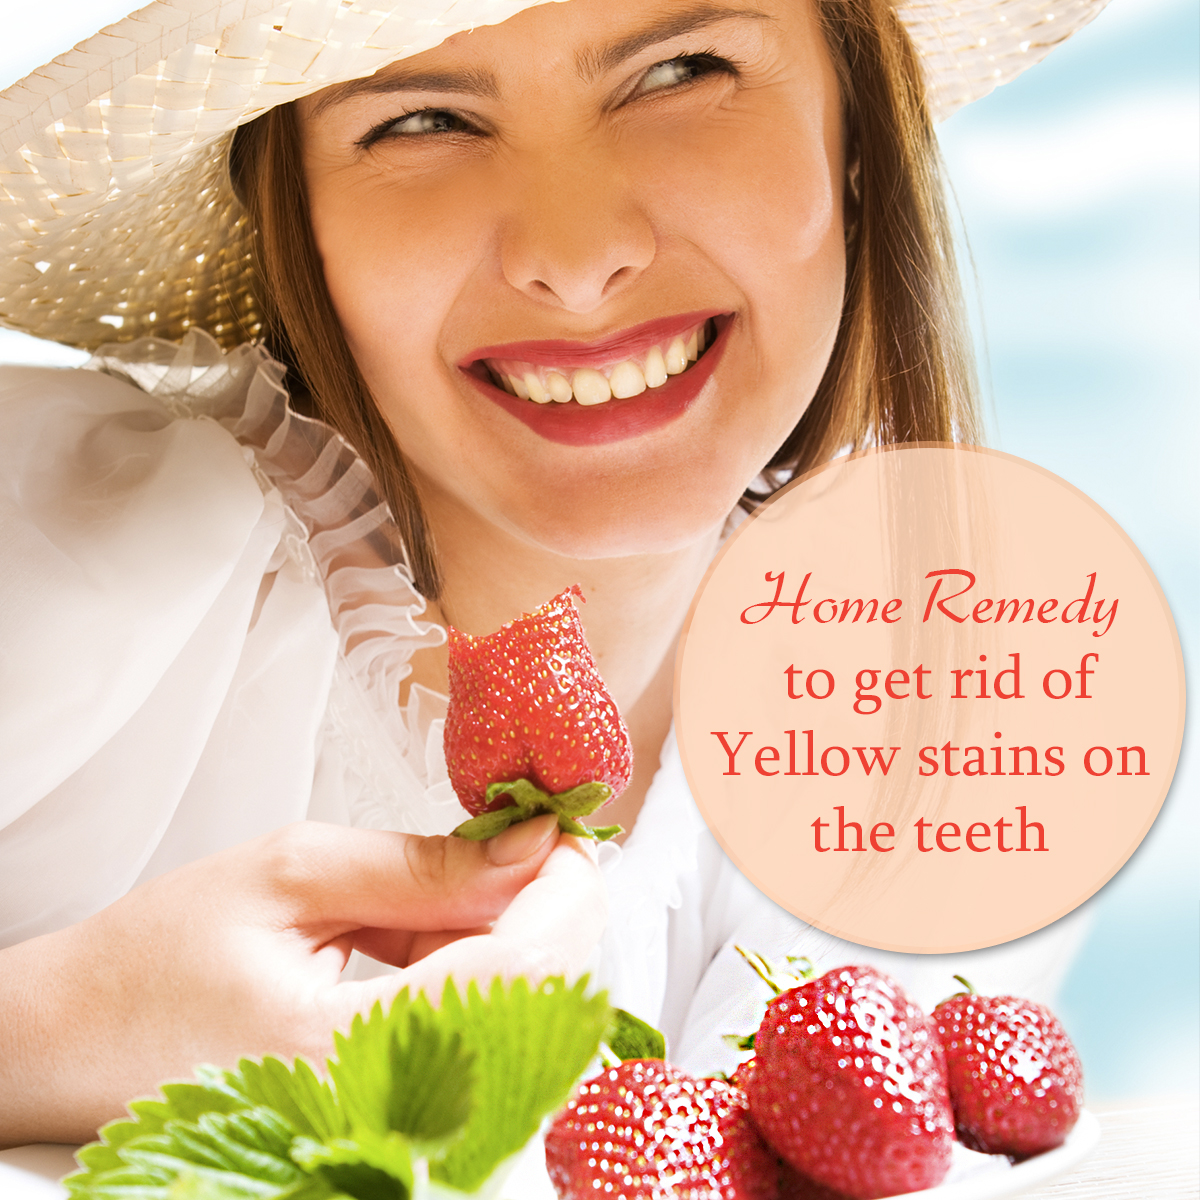 Home Remedies to get rid of Yellow stains on the teeth!